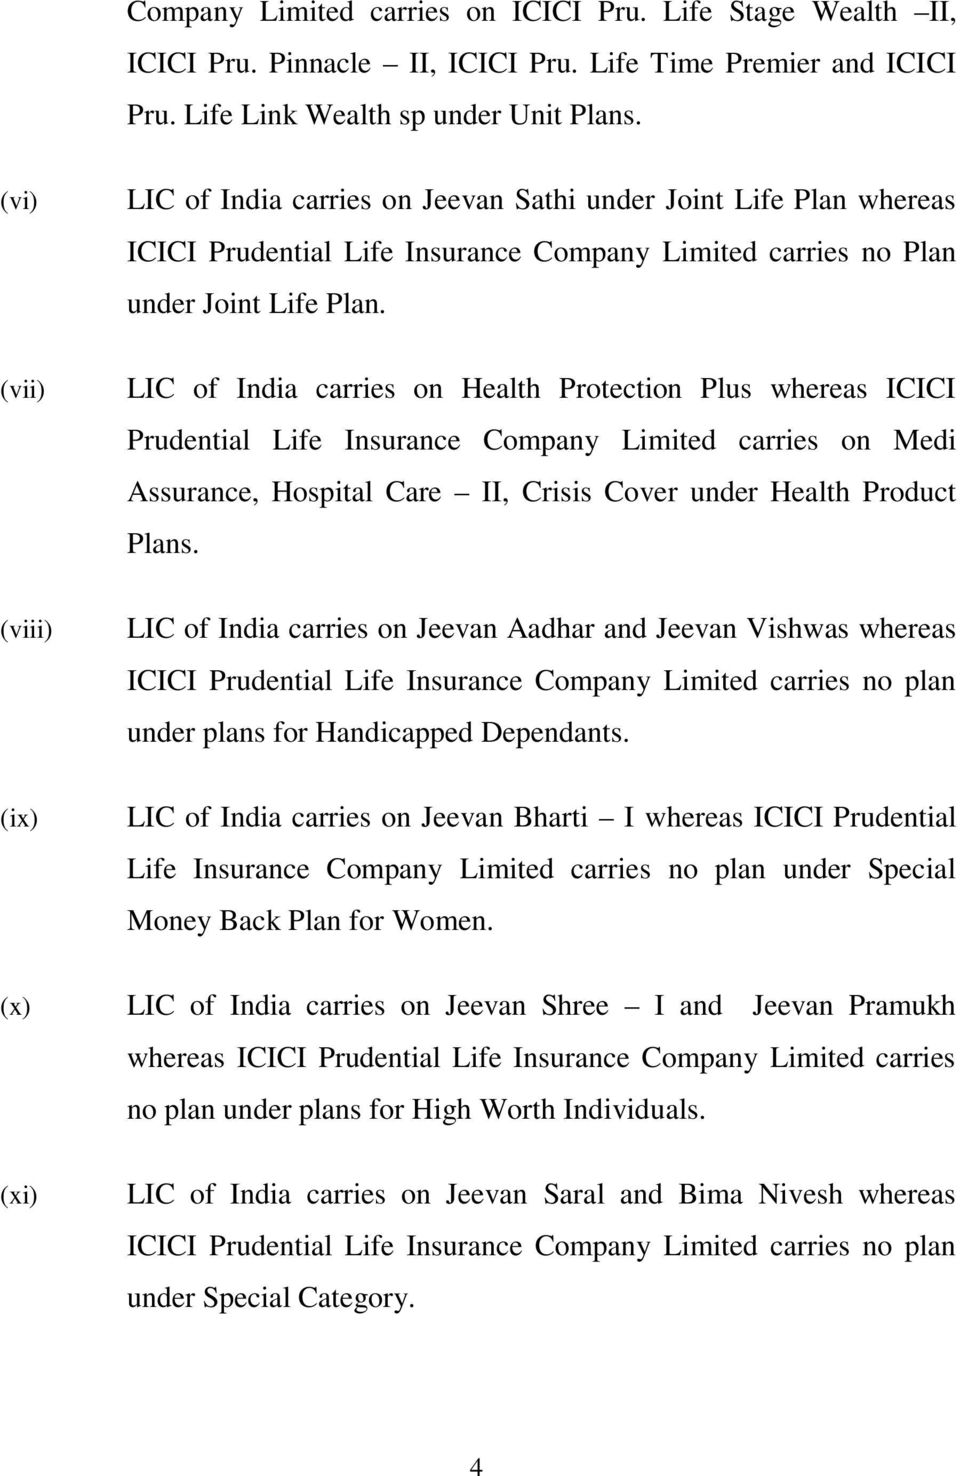 (vii) LIC of India carries on Health Protection Plus whereas ICICI Prudential Life Insurance Company Limited carries on Medi Assurance, Hospital Care II, Crisis Cover under Health Product Plans.